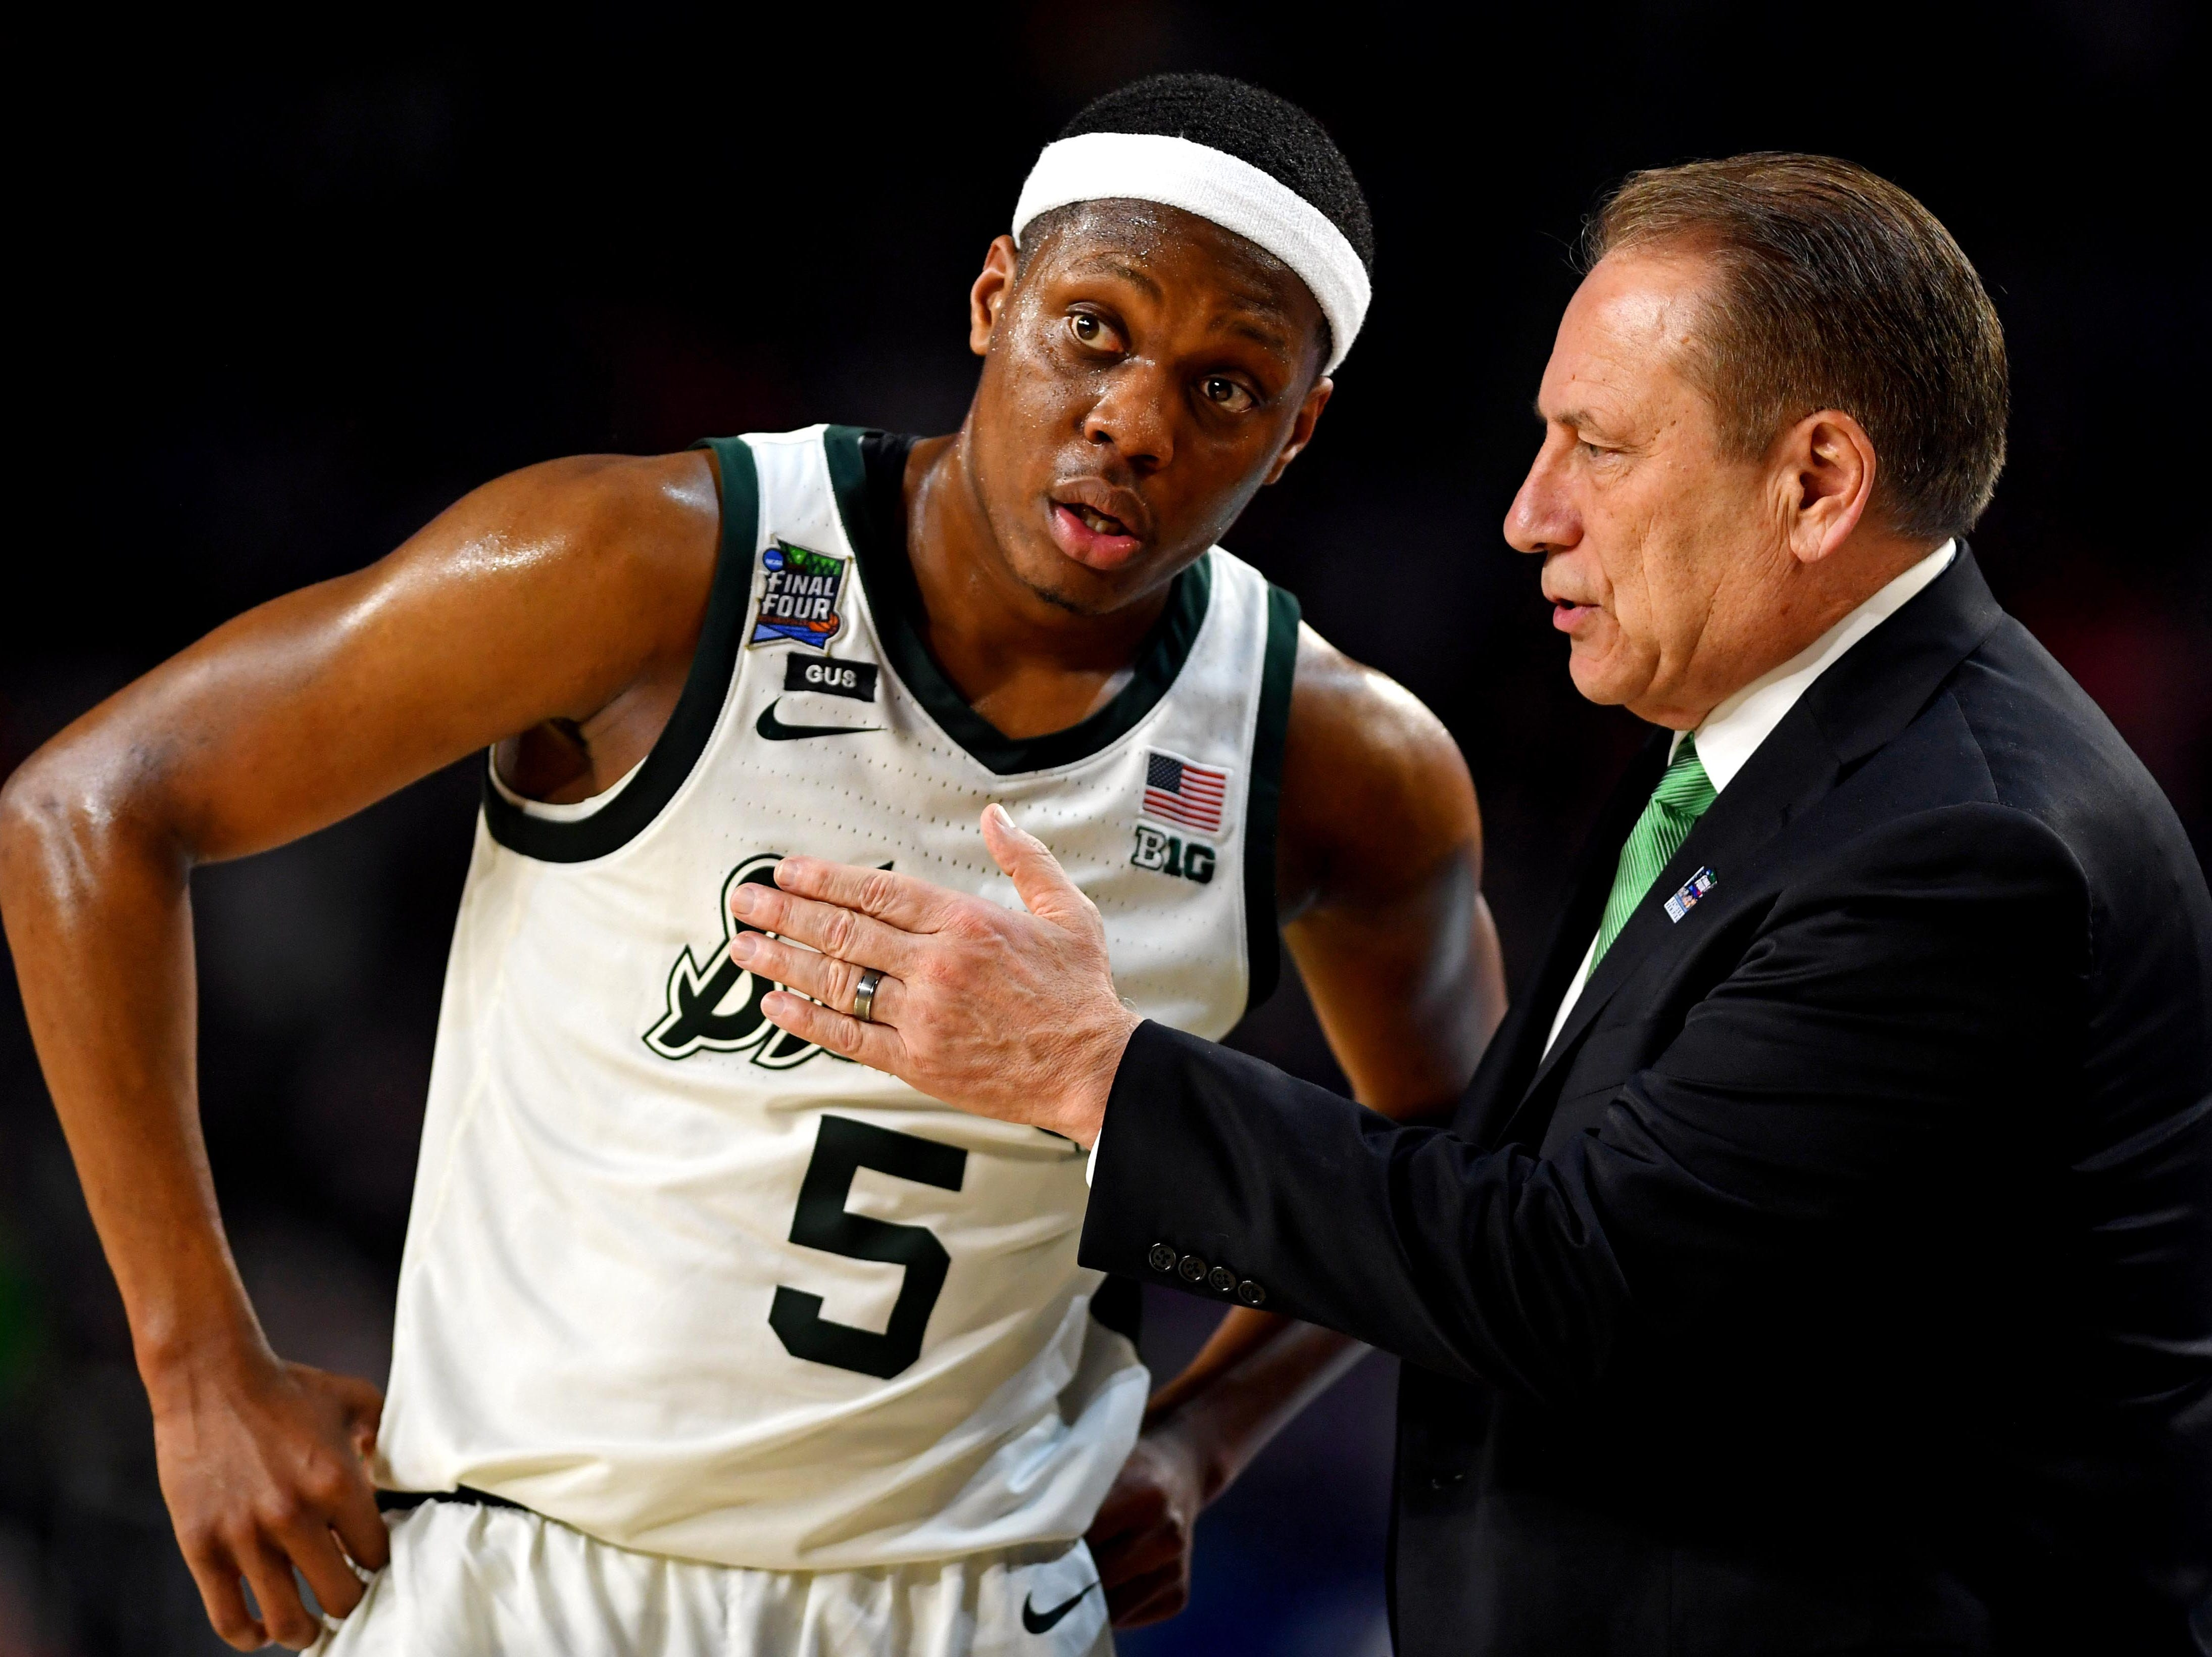 Apr 6, 2019; Minneapolis, MN, USA; Michigan State Spartans guard Cassius Winston (5) talks to Michigan State Spartans head coach Tom Izzo during the second half against the Texas Tech Red Raiders in the semifinals of the 2019 men's Final Four at US Bank Stadium. Mandatory Credit: Bob Donnan-USA TODAY Sports